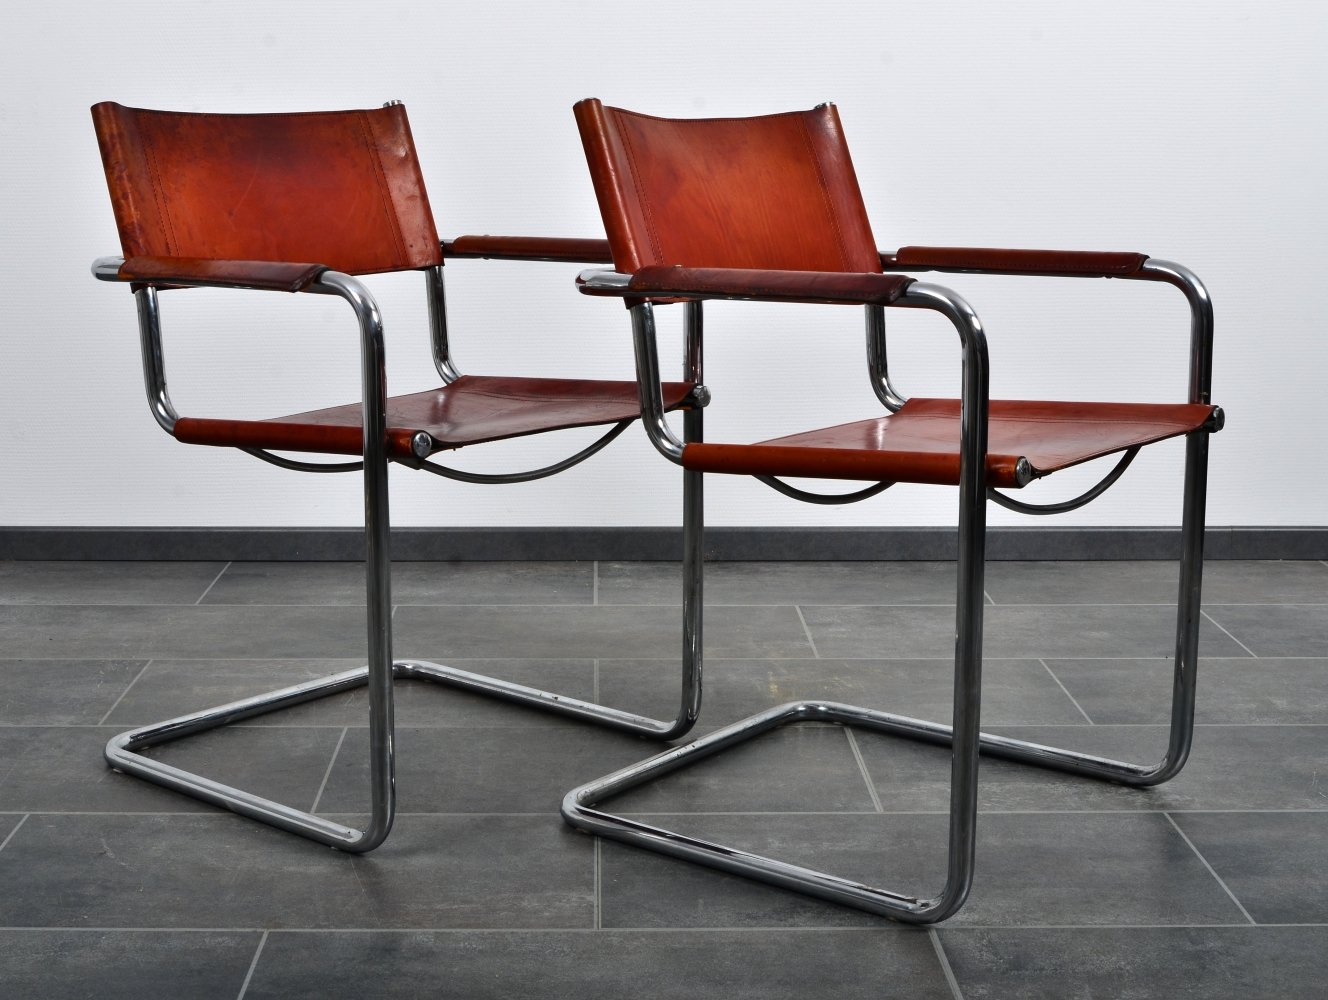 Set of two S34 armchairs by Linea Veam in cognac brown leather